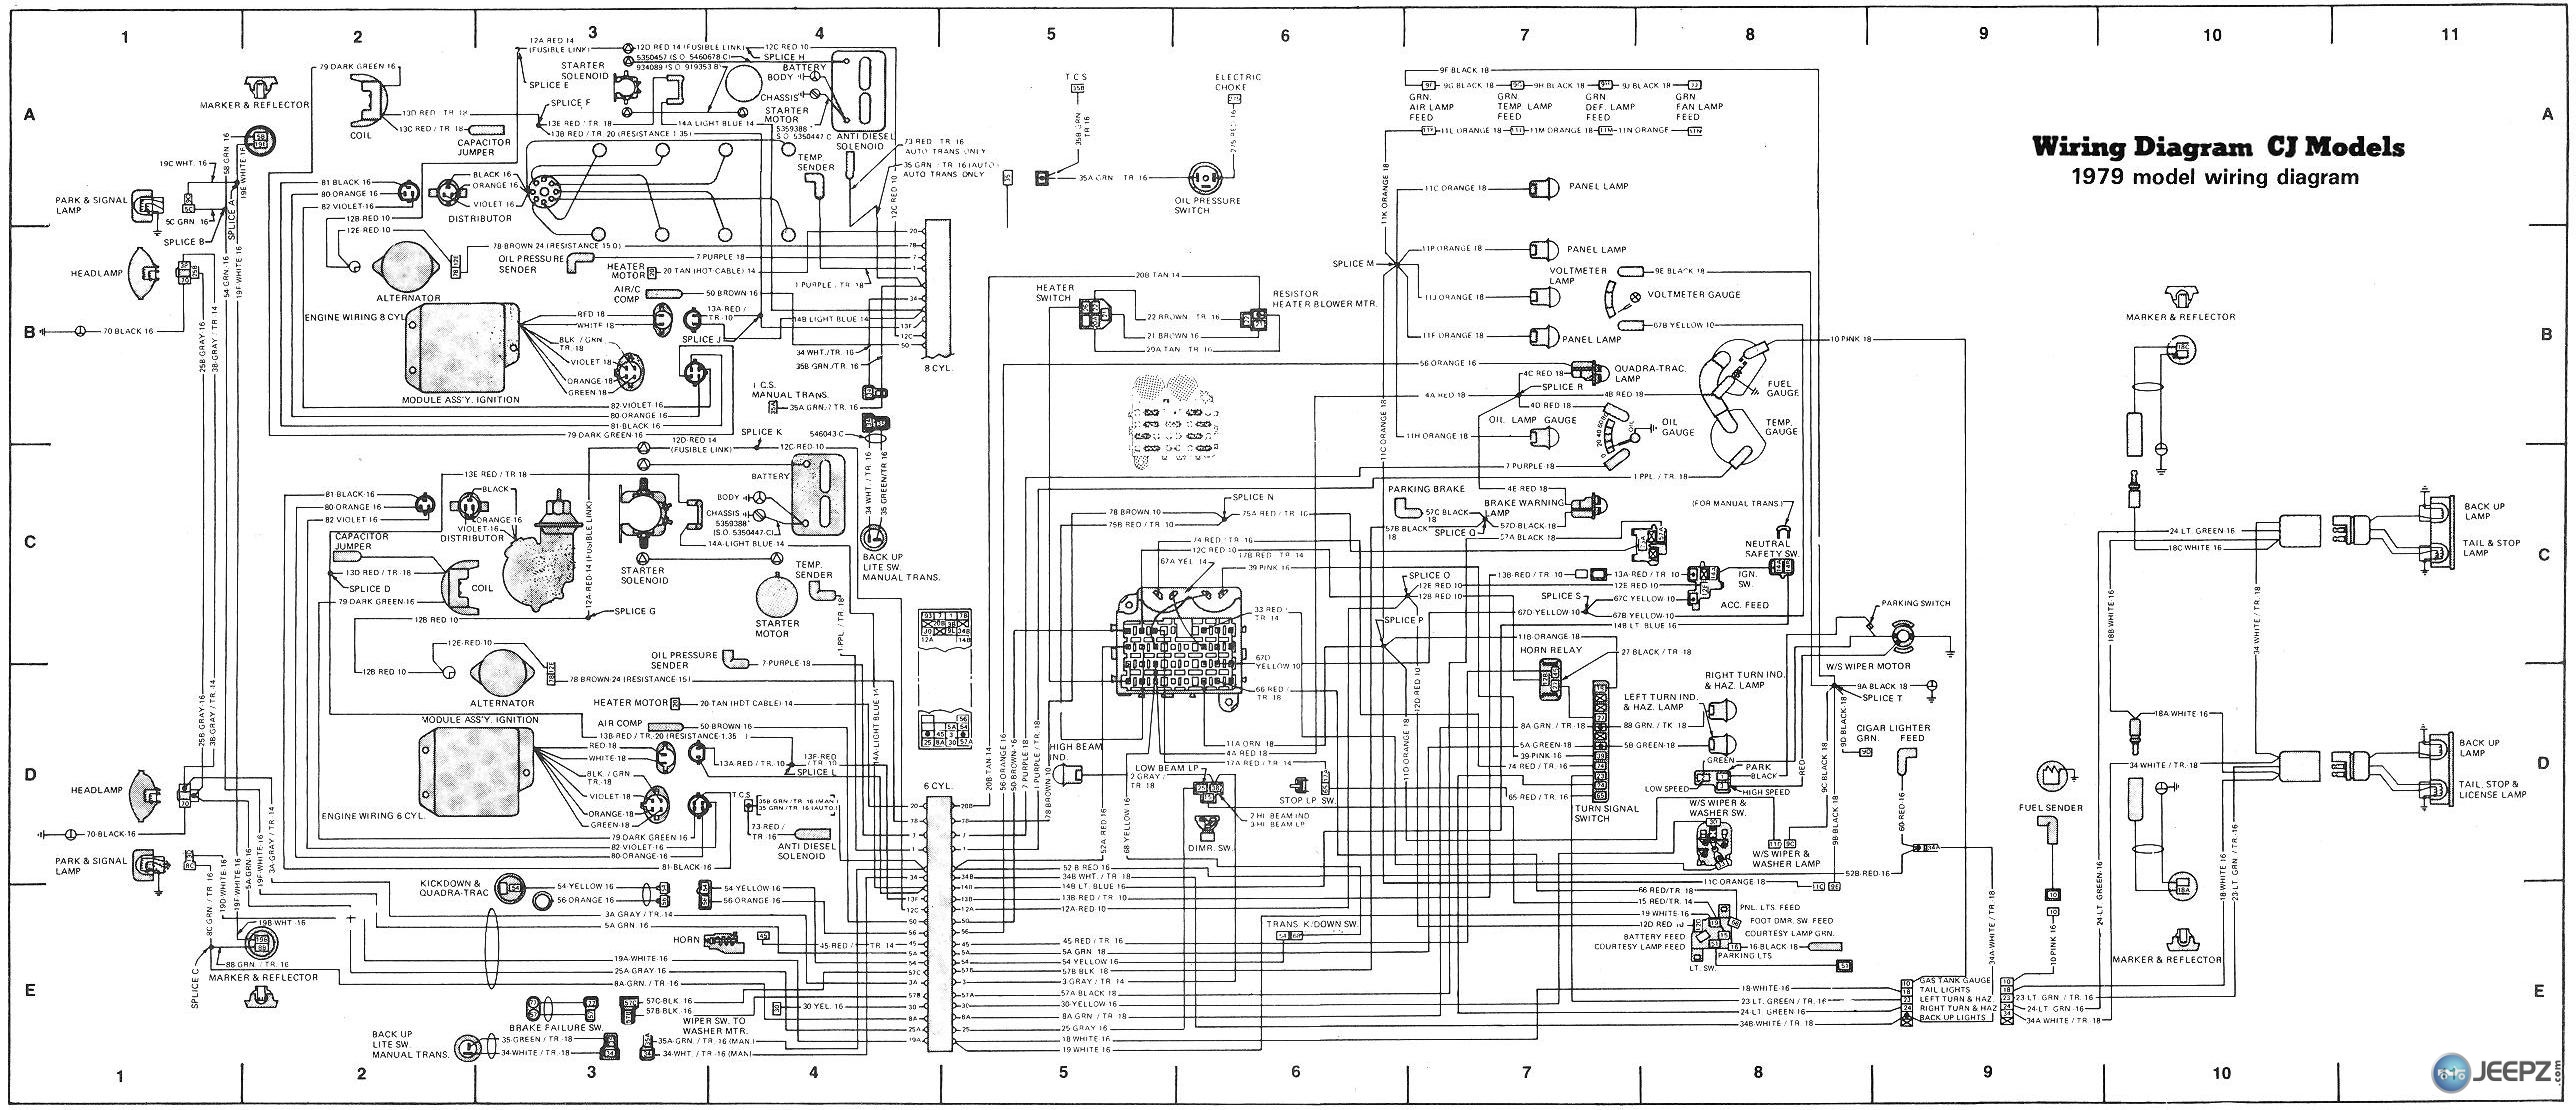 1979 Cadillac Deville Radio Wiring Diagram Library 95 Mustang Wire Cj Headlight Colors Rh Jeepz Com Boat 1965